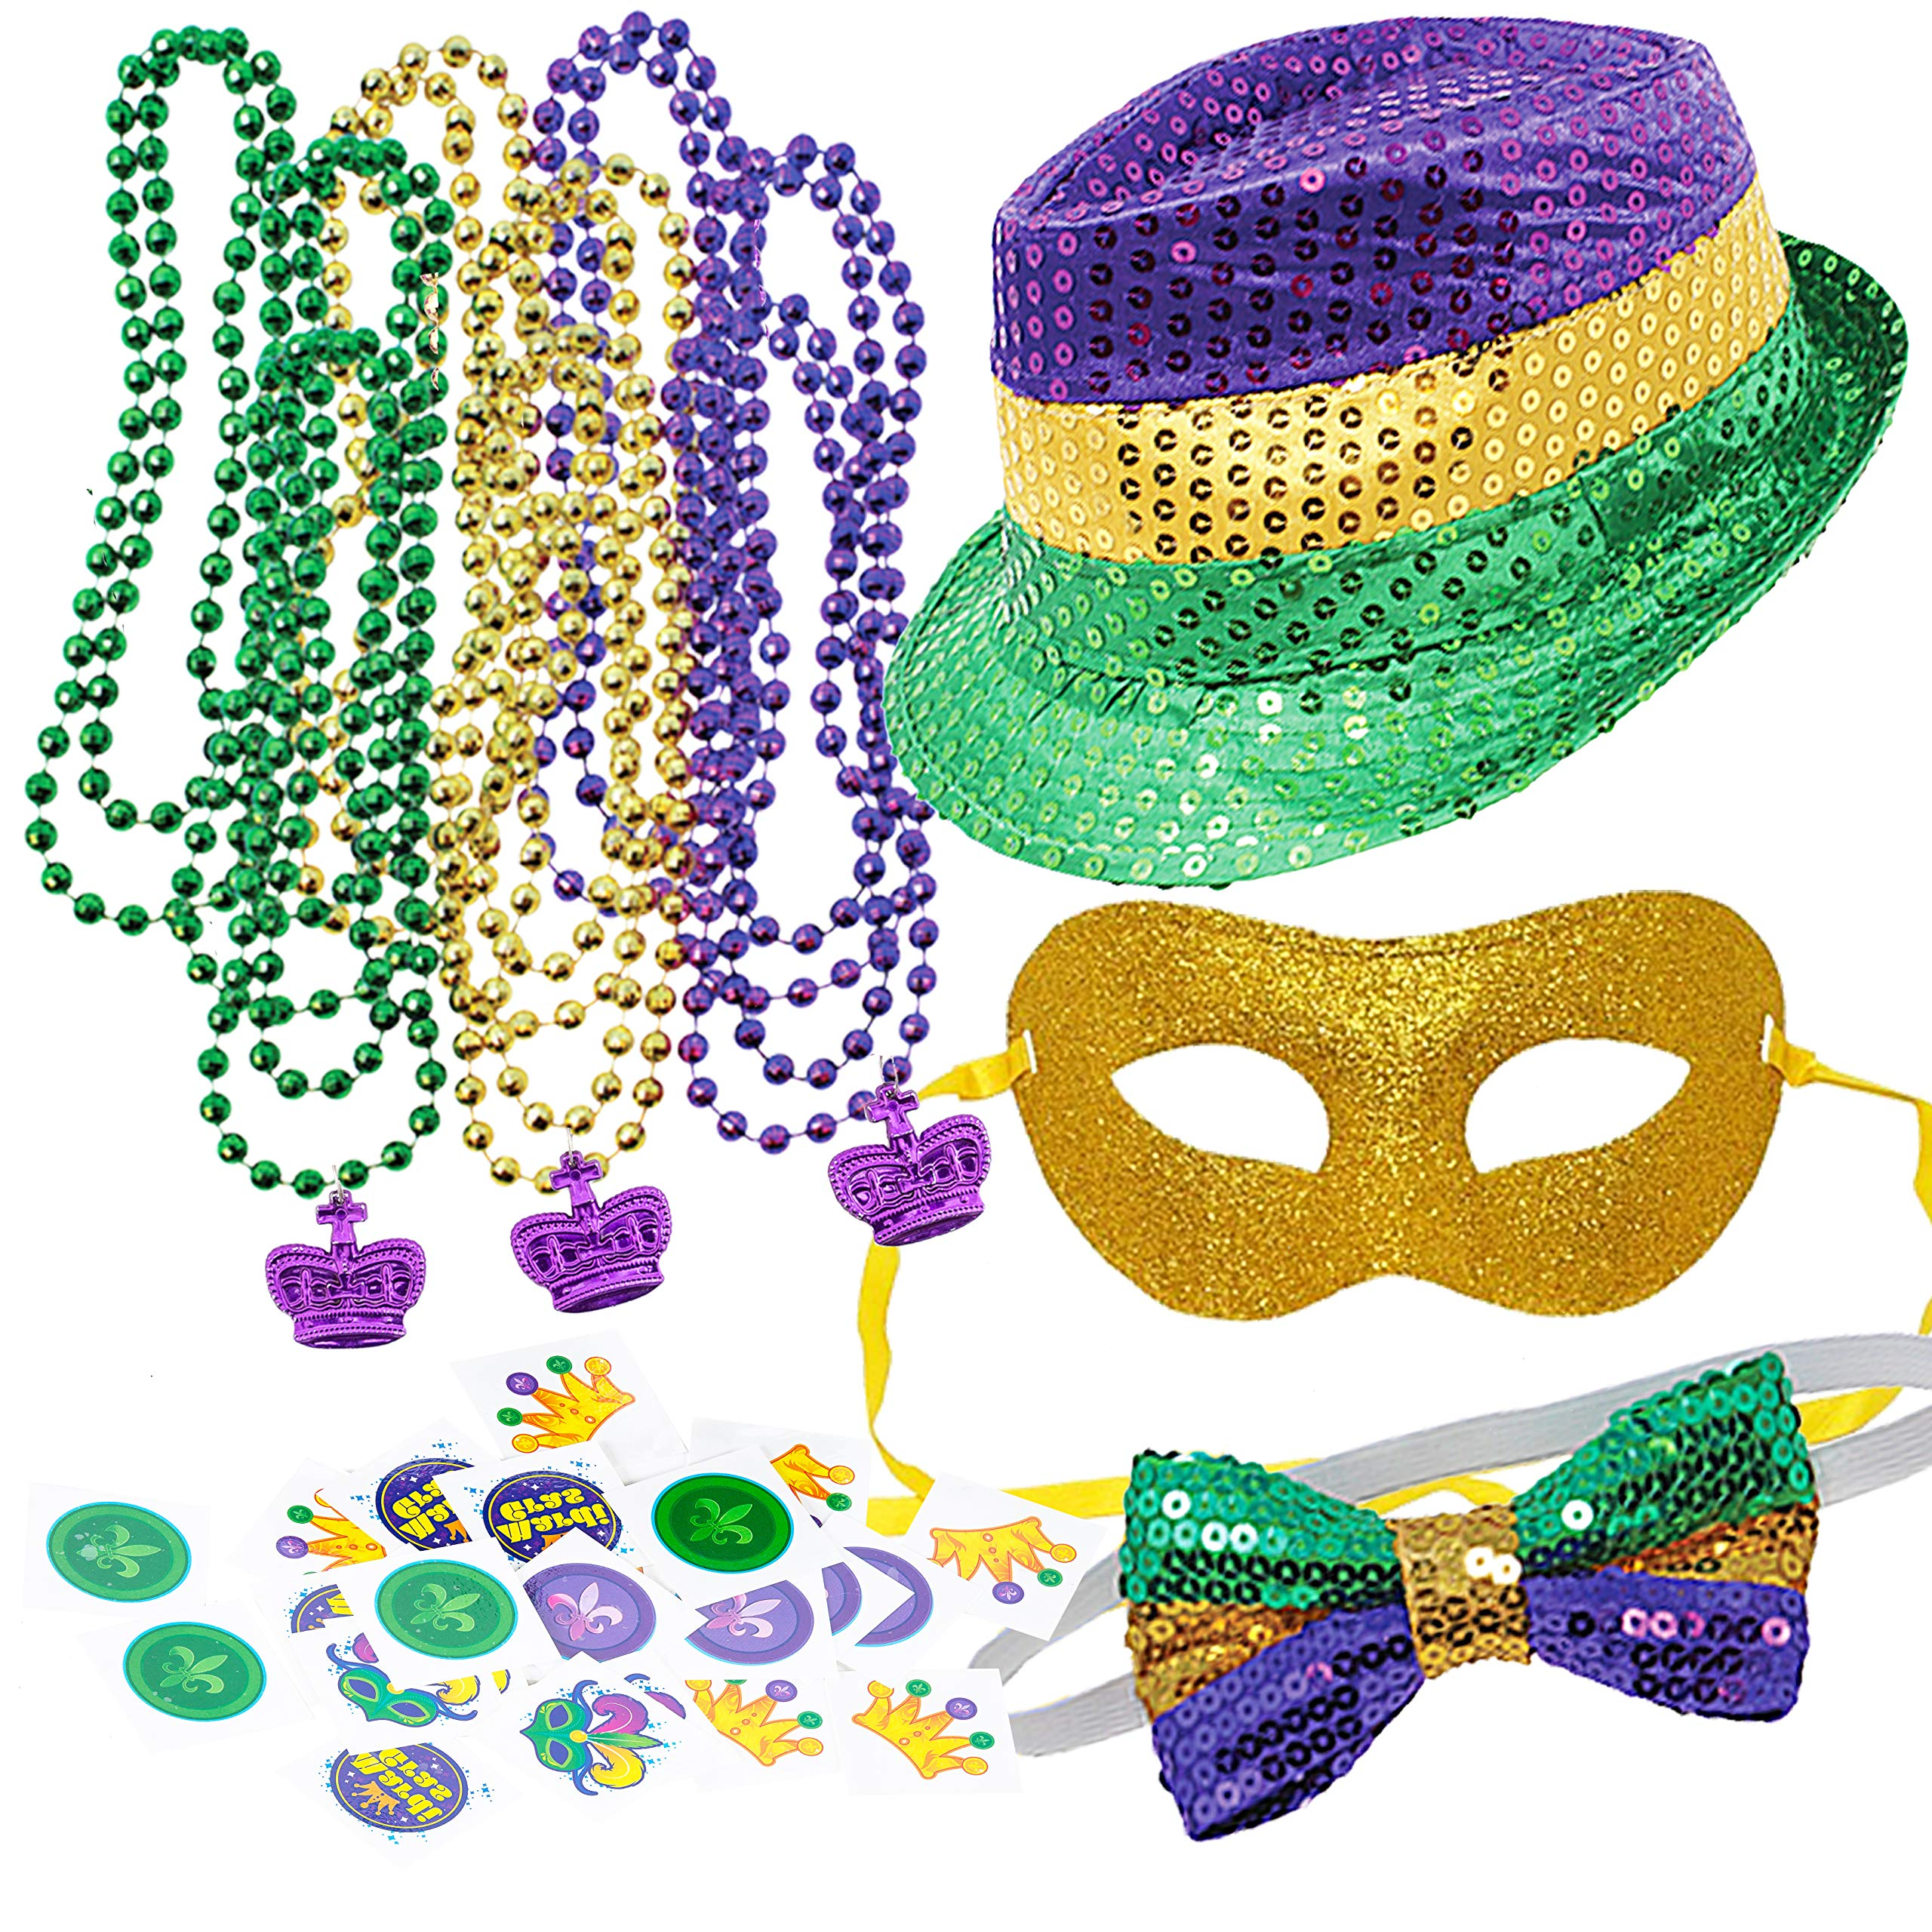 JOYIN 96 Pieces Mardi Gras Beads Beaded Necklace with 192 Temporary Tattoos Mardi Gras Party Favors Accessory and Supplies